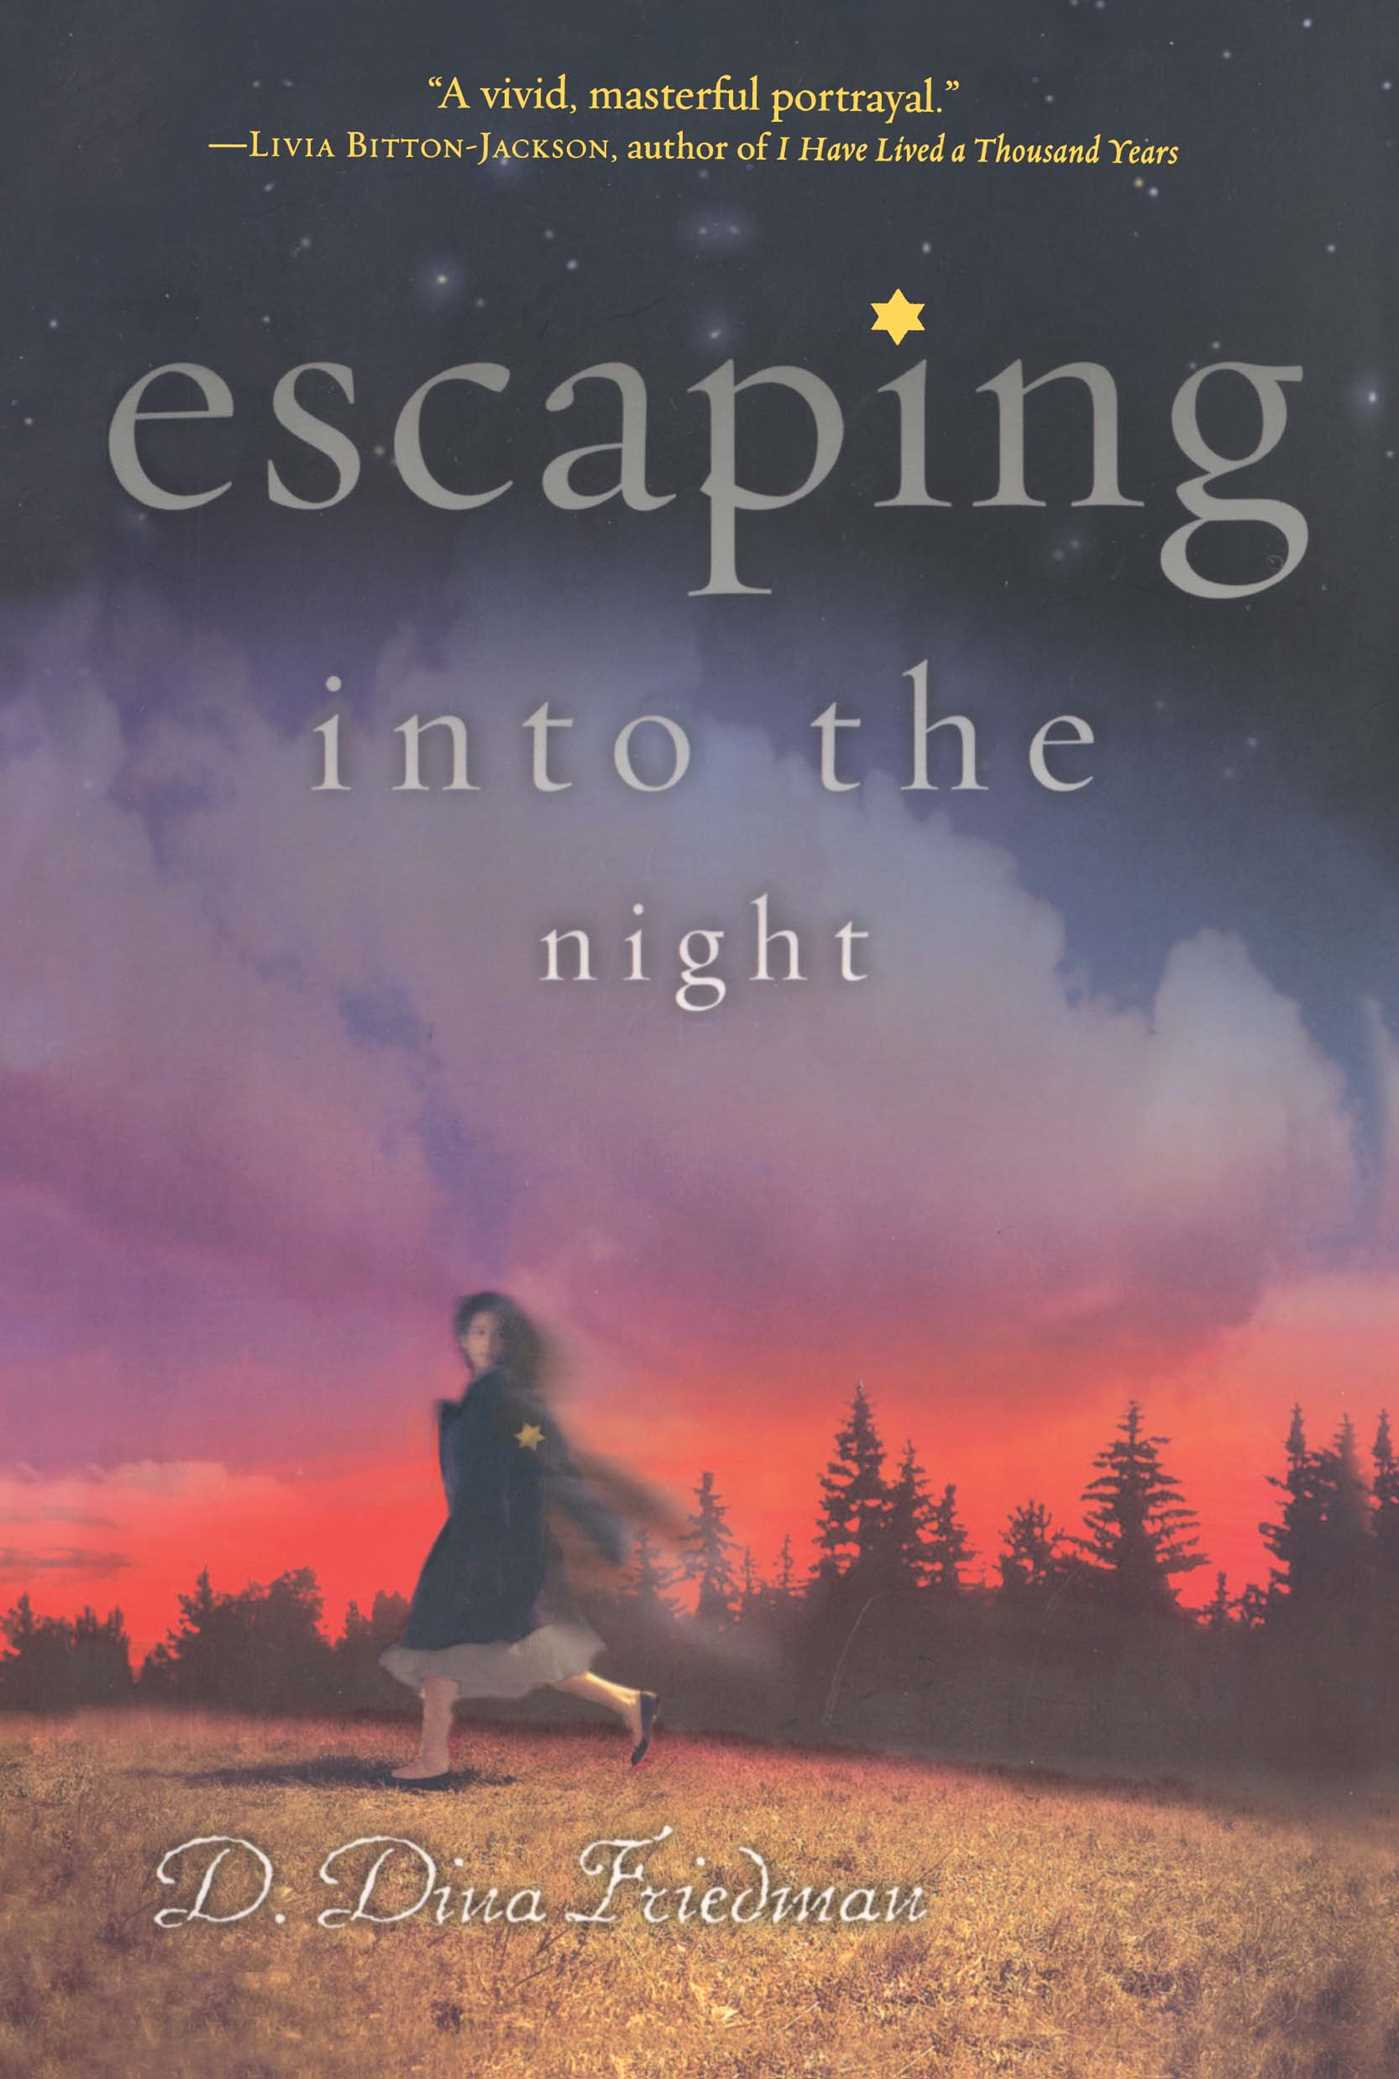 Escaping into the night 9781416996651 hr